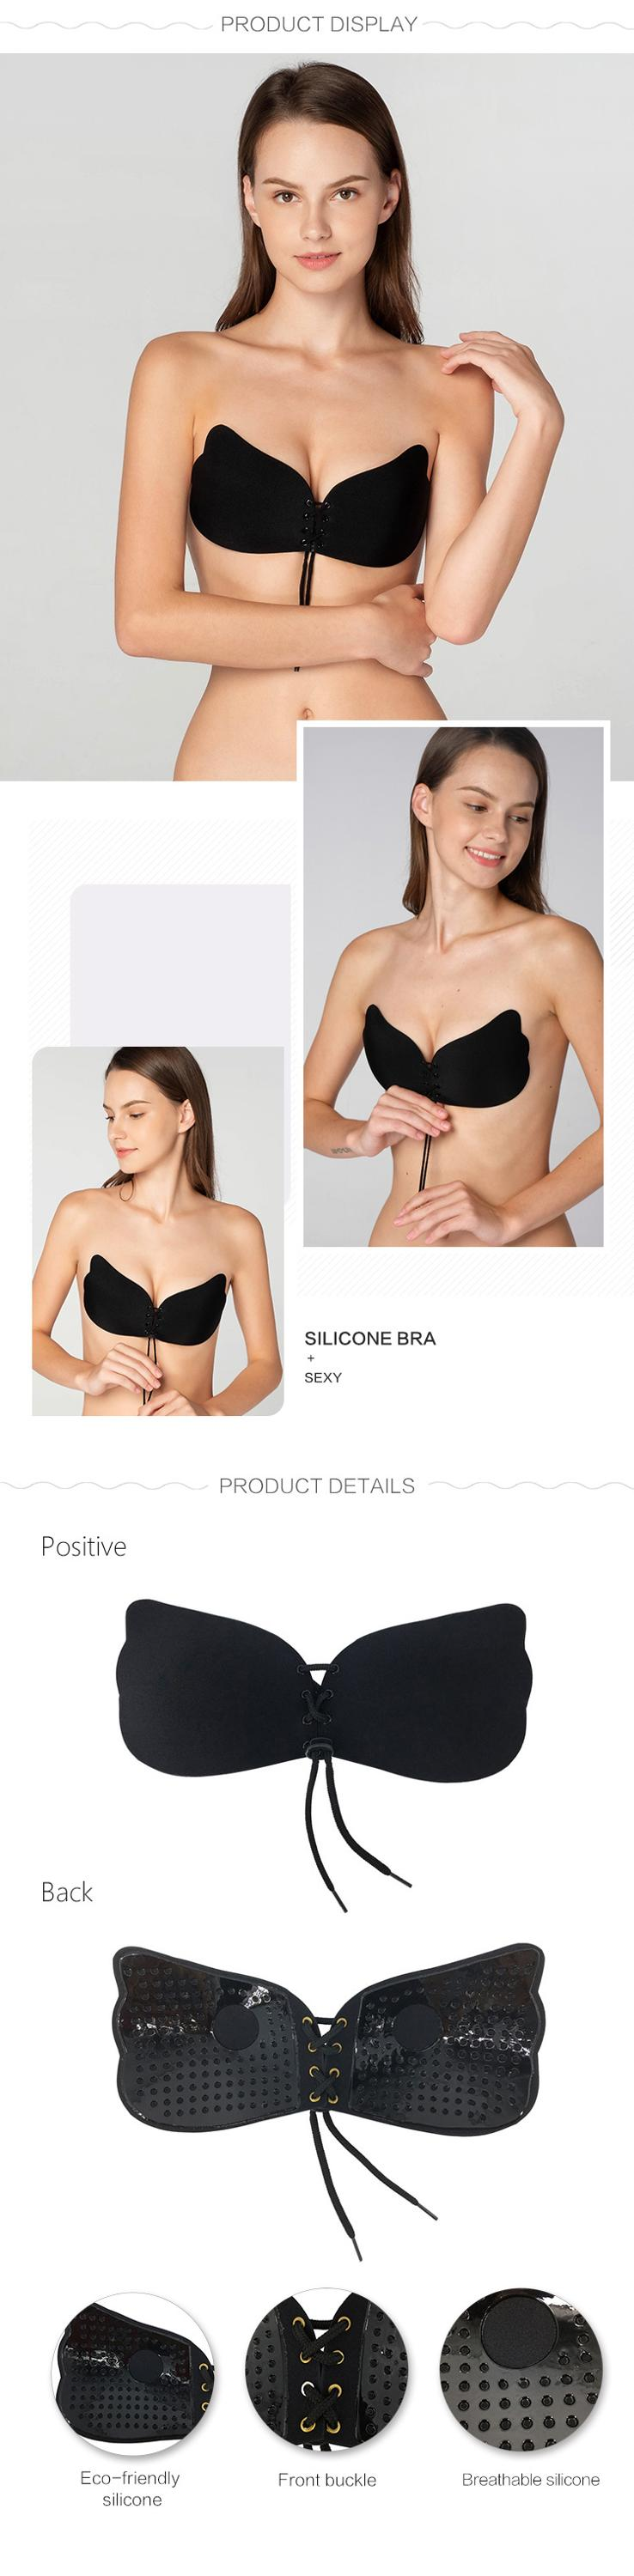 Women strapless bra-product details